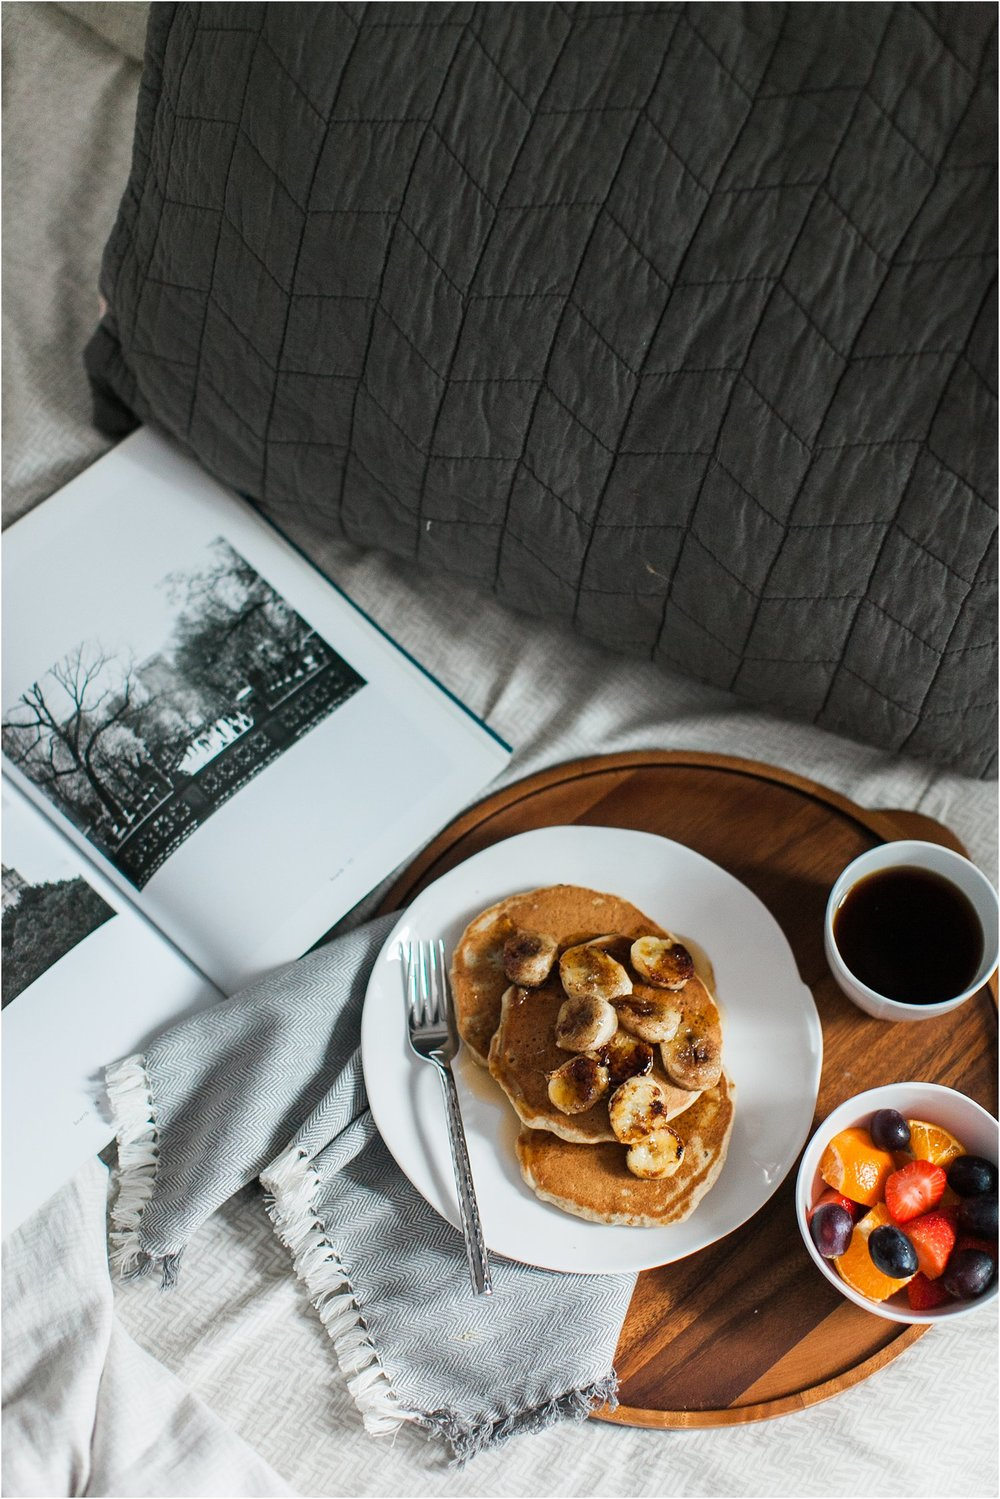 2017-01-Breakfast in Bed | Gluten Free Banana Pancakes with Caramelized Cinnamon Bananas | Feast & Dwell